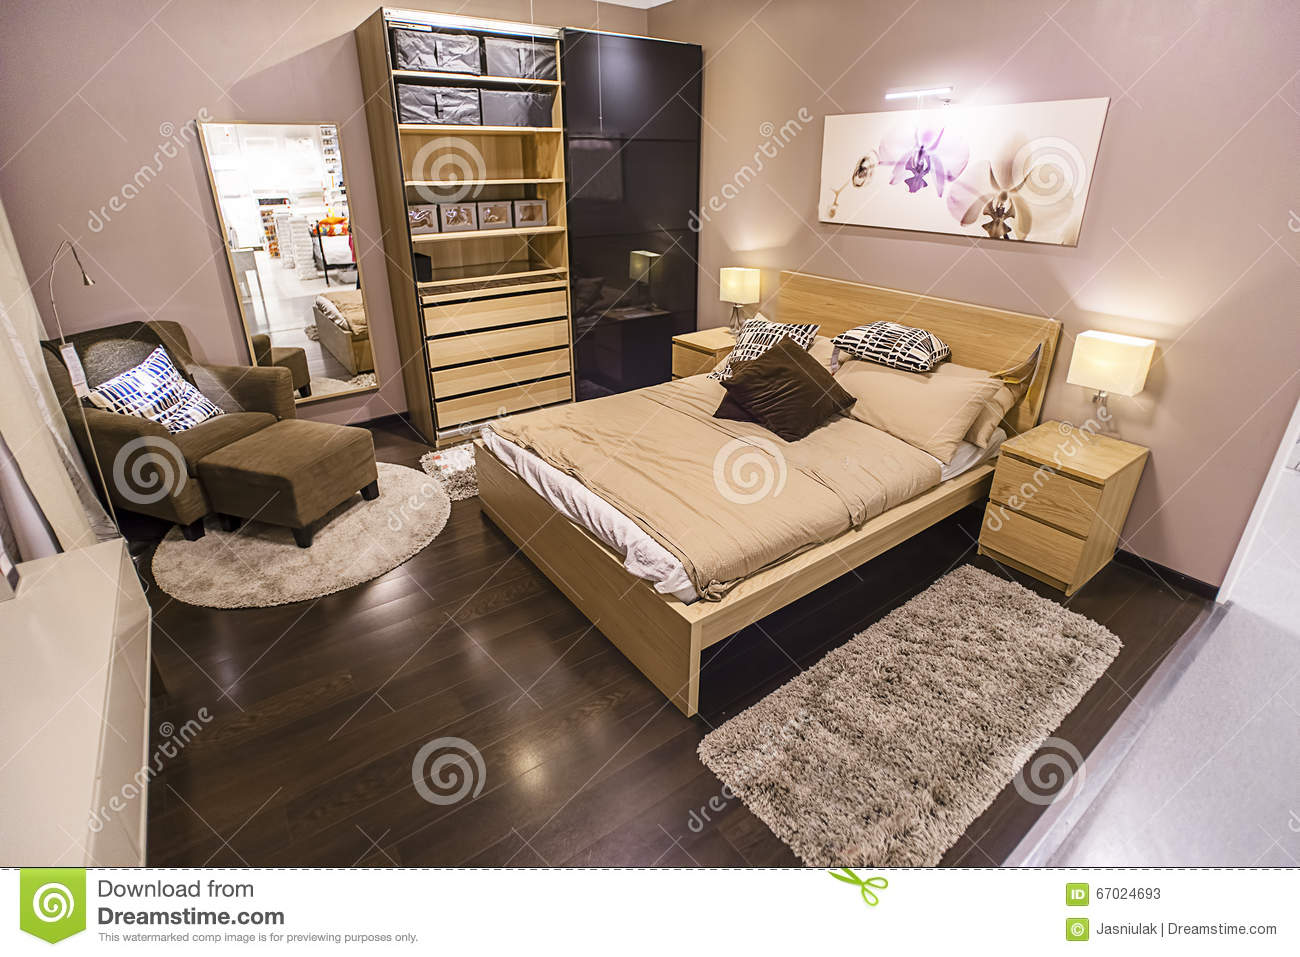 november 21 2015 a sample of the bedroom interior in ikea store